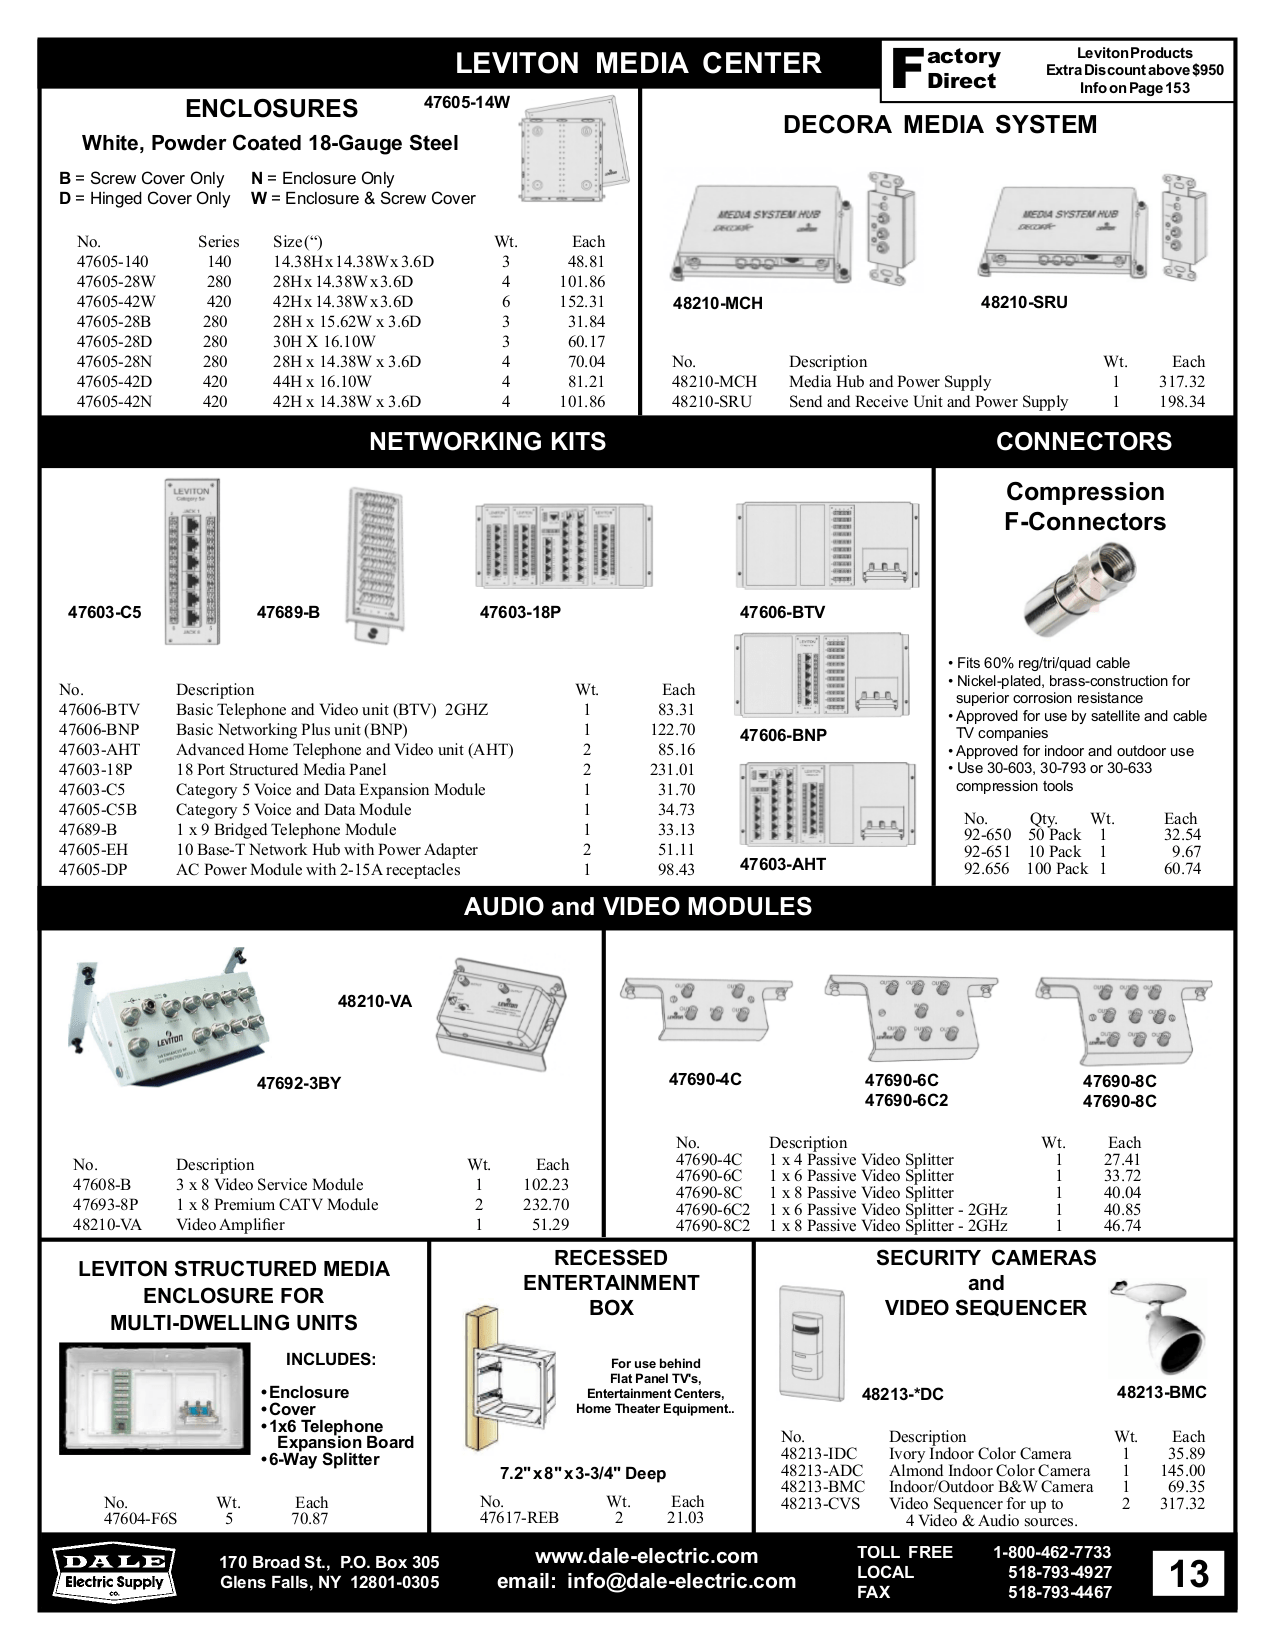 Download free pdf for Leviton 48213-CVS Video Sequencer